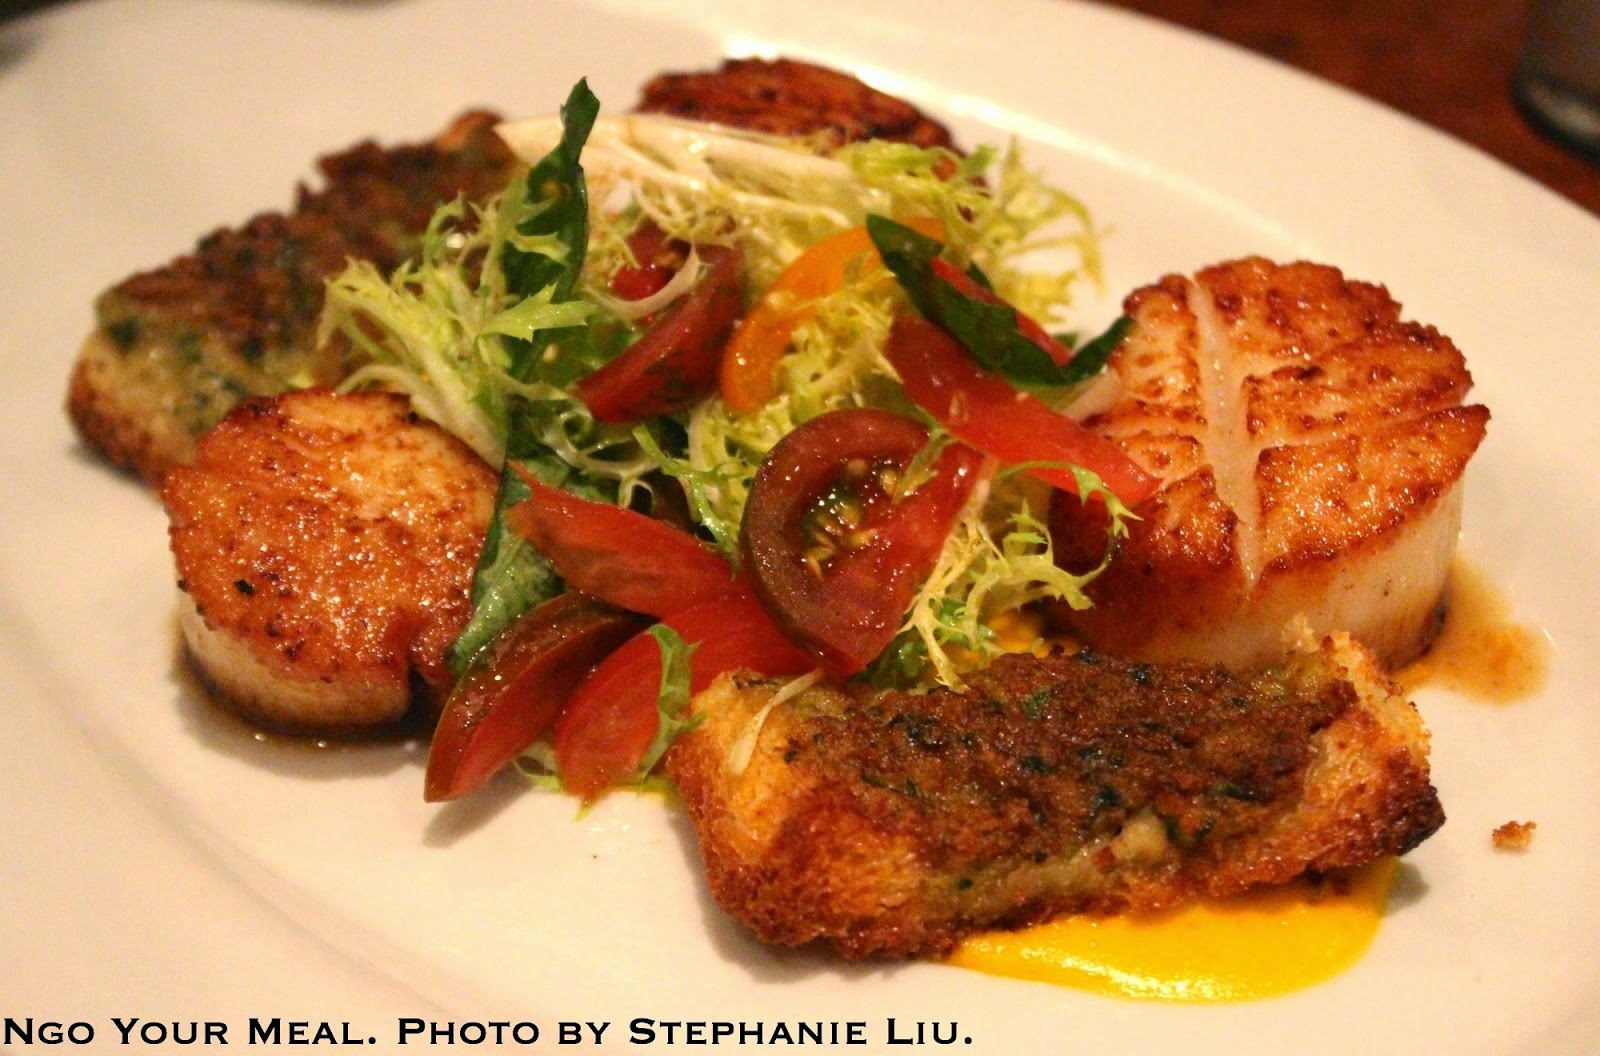 Seared Diver Scallops with Shrimp Toast, Tomato Fondue, and Basil Salad at Jane